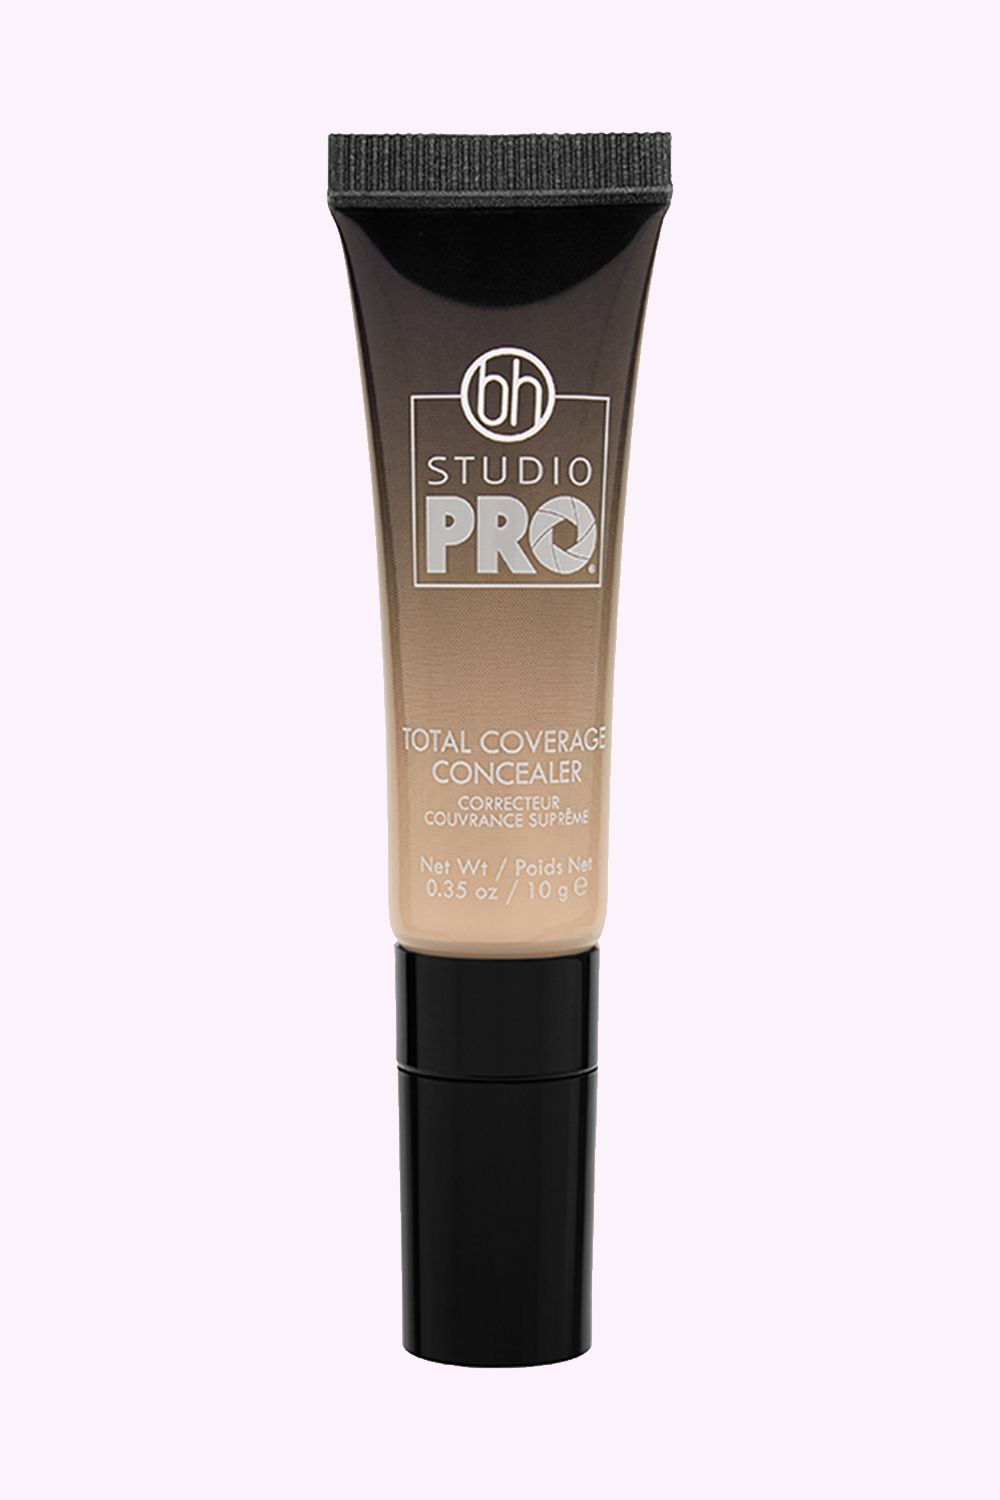 "<p>""This really, really surprised me. I'm a concealer snob…[but] this babe right here is true full-coverage; blends out like a dream and really lasts. It will crease a bit, but nothing like all the other cheaper concealers I tried…Really impressed by this, and the shade range is BOMB. BH Cosmetics really stepped up their game, in my opinion."" —@<i data-redactor-tag=""i""><a href=""https://www.reddit.com/r/MakeupAddiction/comments/6o0jrg/your_cheap_af_hgs/"">MrsLovettsPies</a></i></p><p><i data-redactor-tag=""i""> BH Cosmetics Studio Pro Total Coverage Concealer, $4</i></p><p><strong data-redactor-tag=""strong"">BUY IT: <a href=""http://www.bhcosmetics.com/studio-pro-total-coverage-concealer"">bhcosmetics.com</a>.</strong></p>"